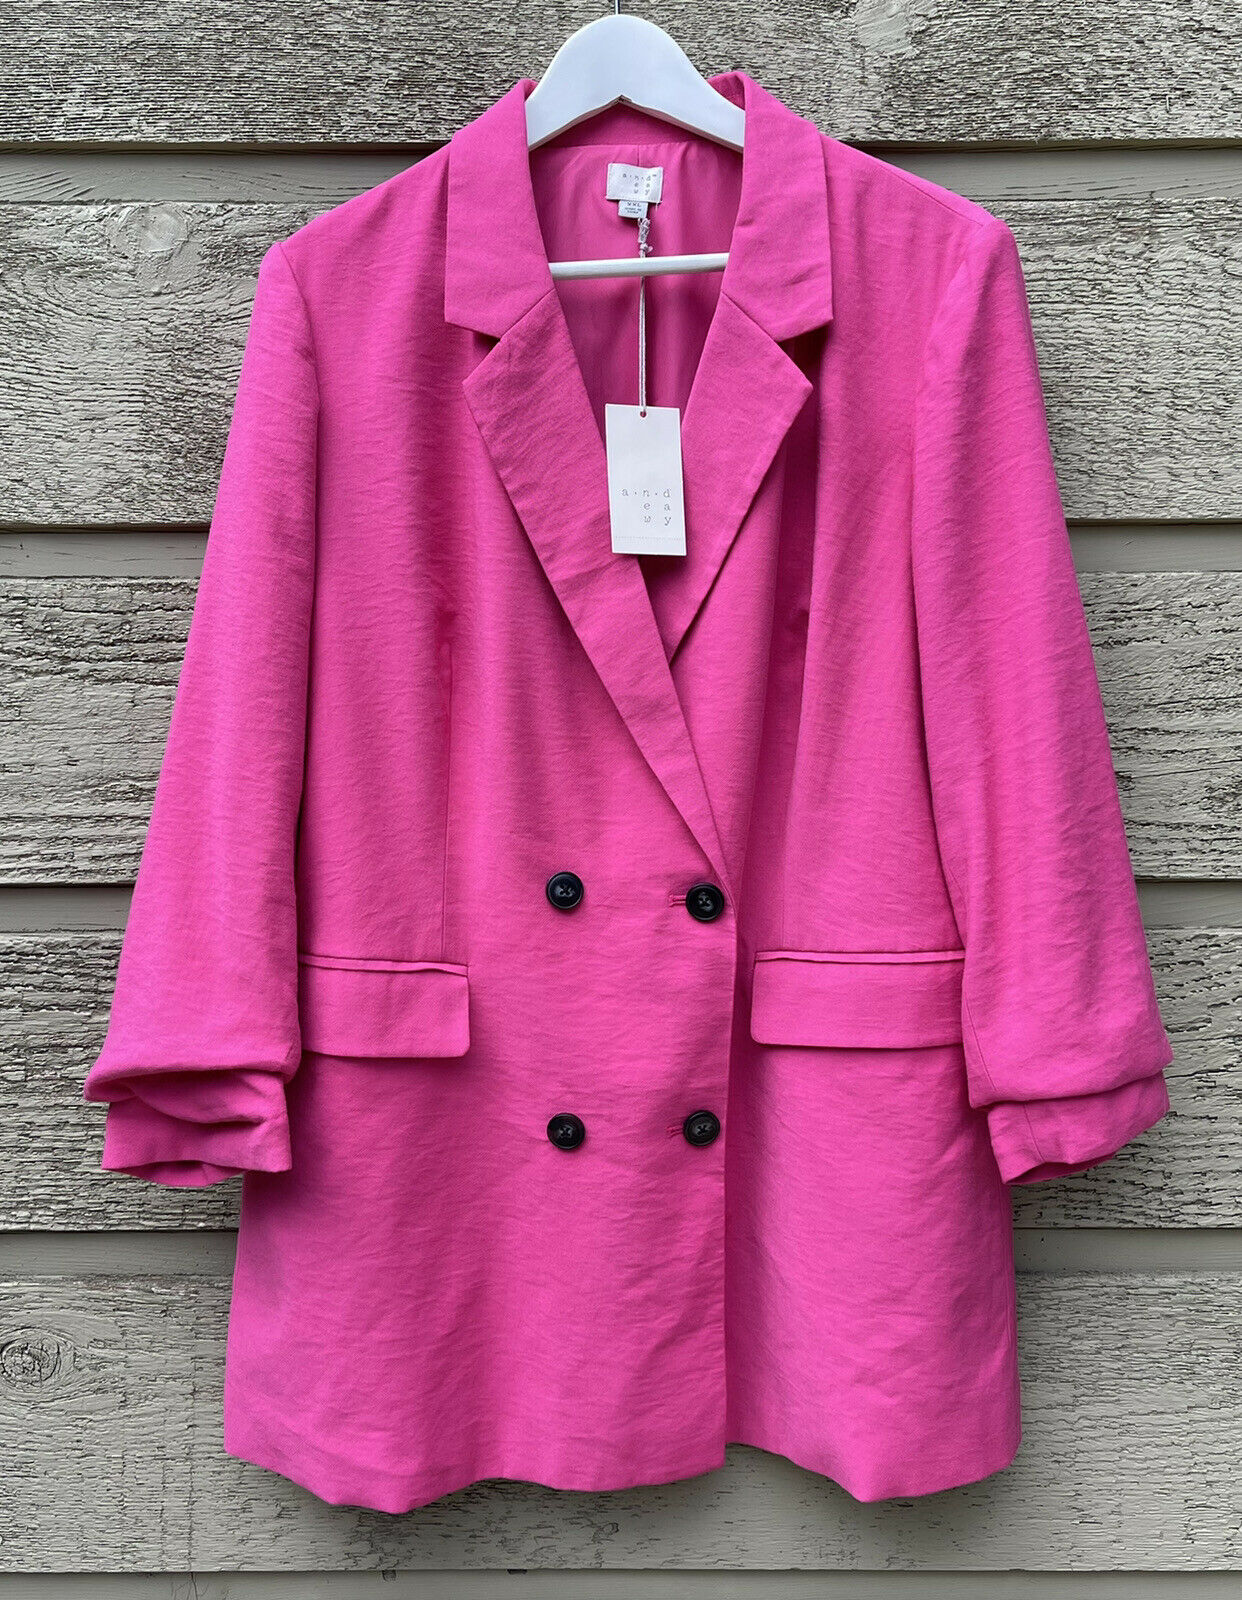 A New Day For Target Womens Double Breasted Blazer Sz XXL Pink Lined Jacket